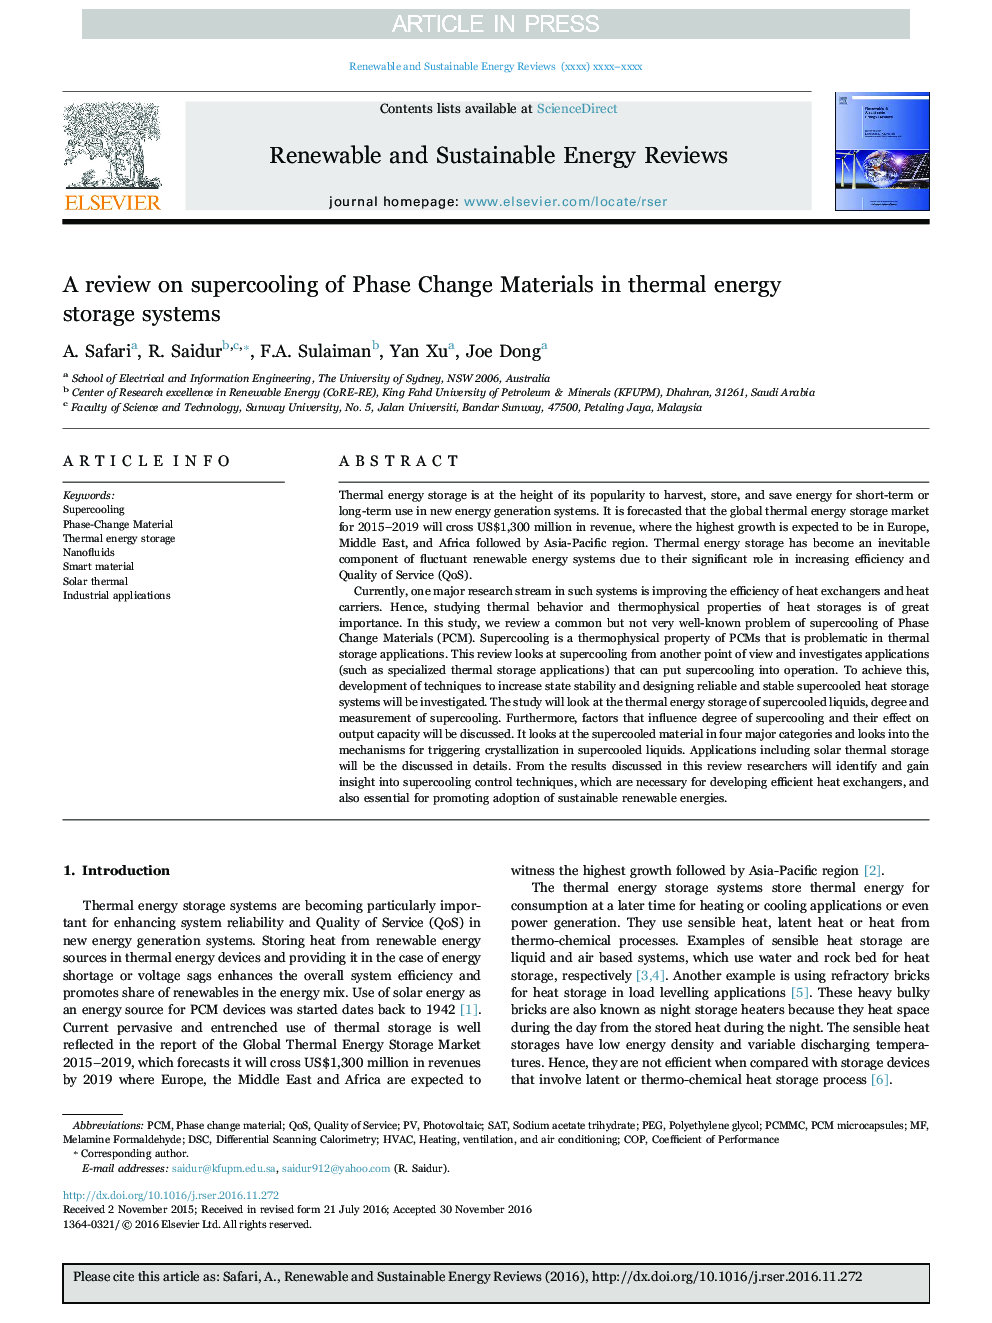 A review on supercooling of Phase Change Materials in thermal energy storage systems